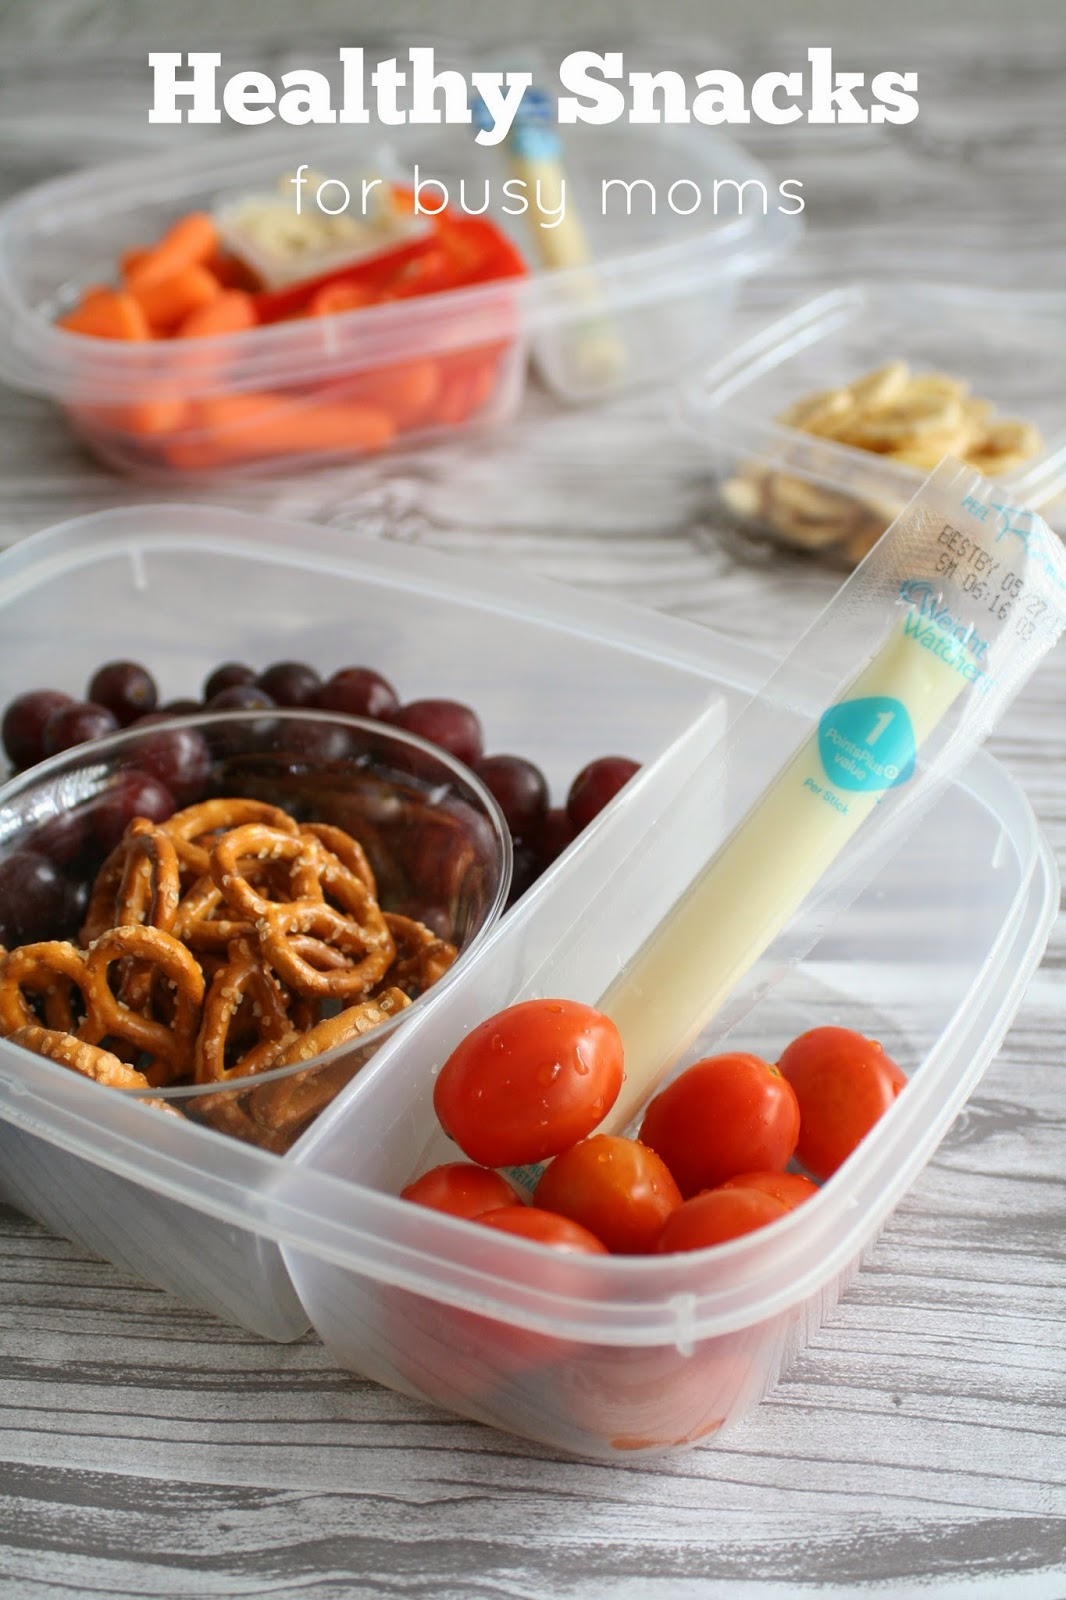 Healthy Snacks for Busy Moms | jordanseasyentertaining.com